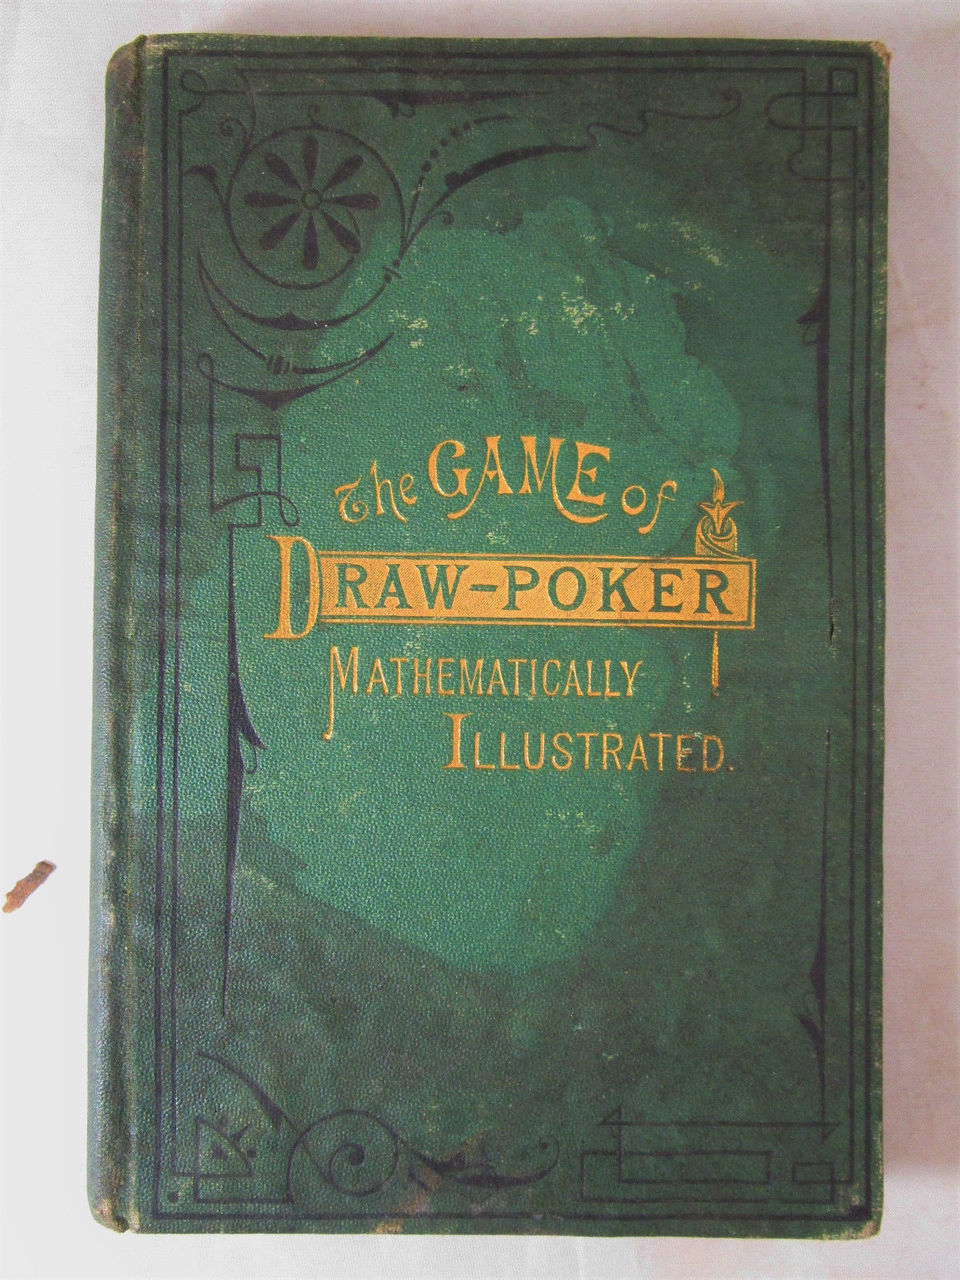 GAME OF DRAW-POKER, MATHEMATICALLY ILLUSTRATED, by Winterblossom - 1875 [1st Ed]